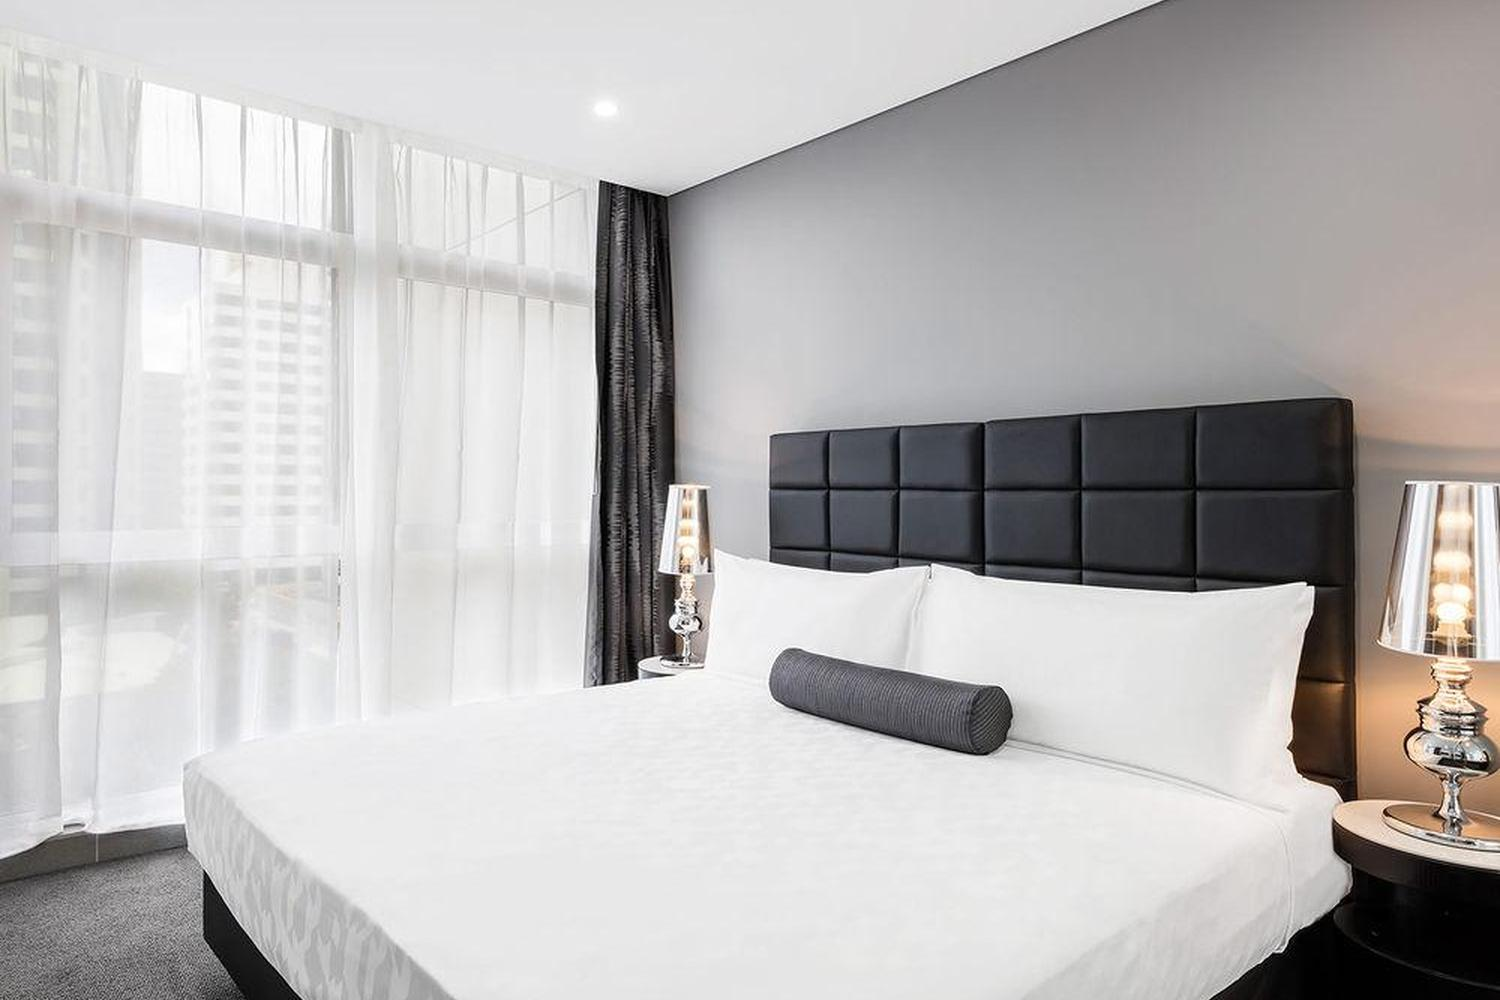 Meriton Serviced Apartments Chatswood Pet Policy